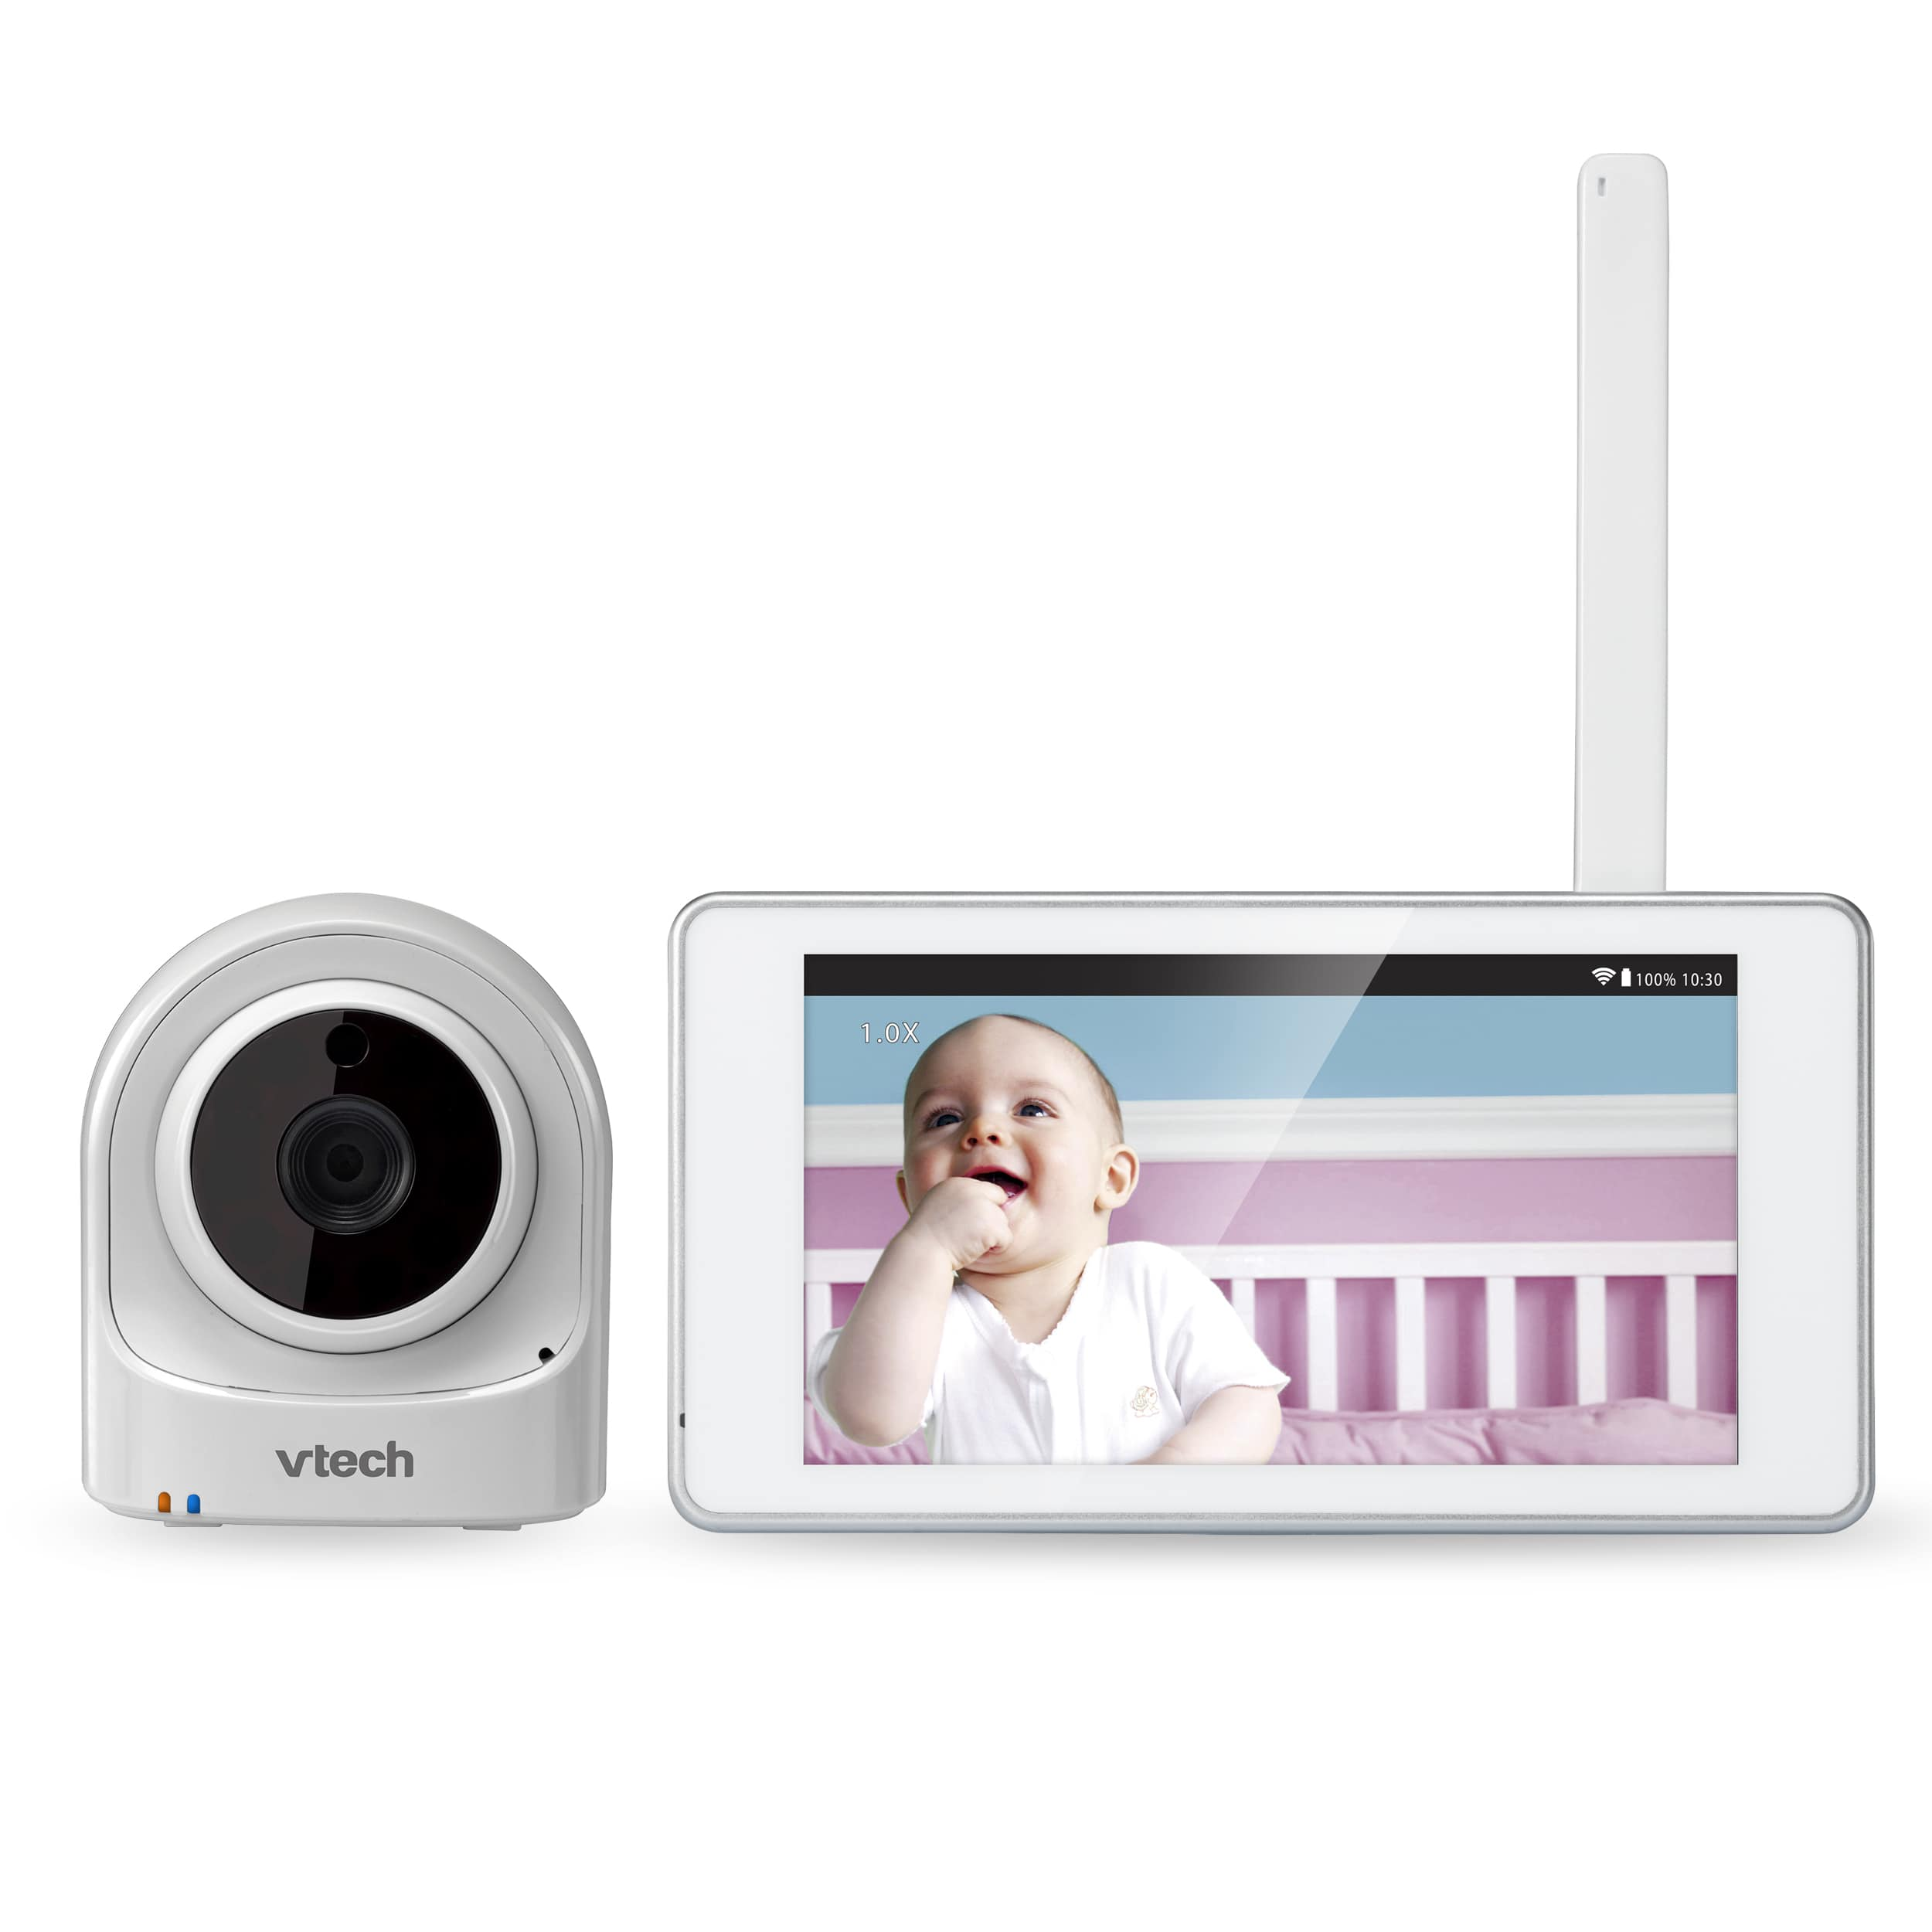 Expandable Wireless Hd Video Baby Monitor With 1 Wi Fi Camera And 5 Touch Screen Vm981 Vtech Cordless Phones